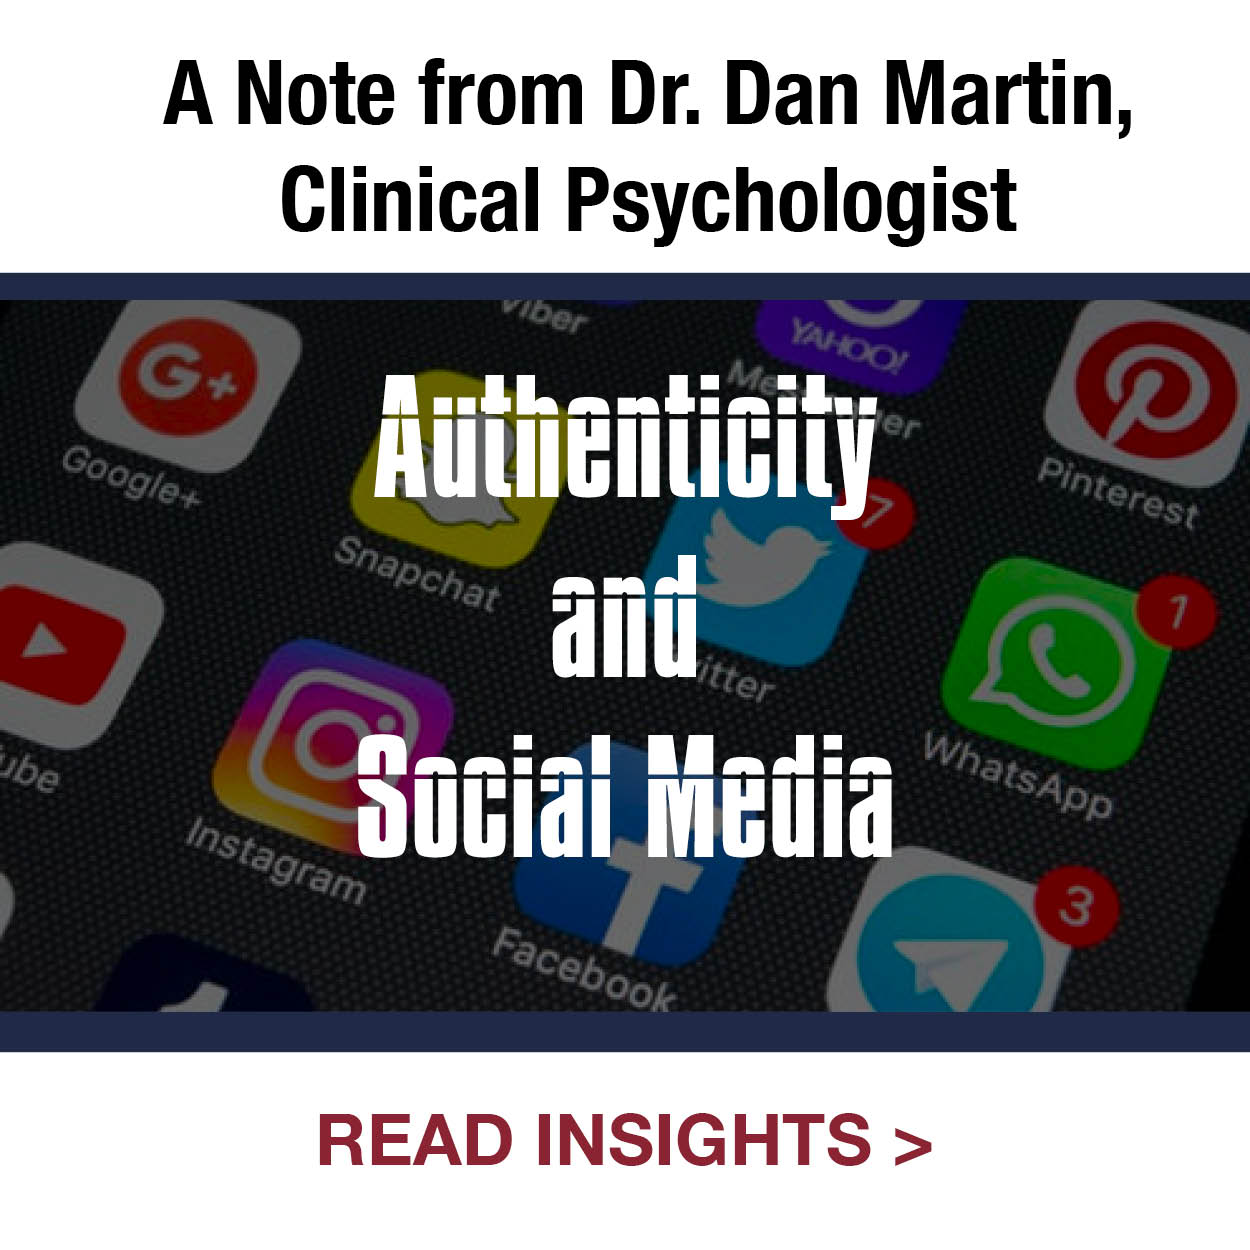 Authenticity and Social Media